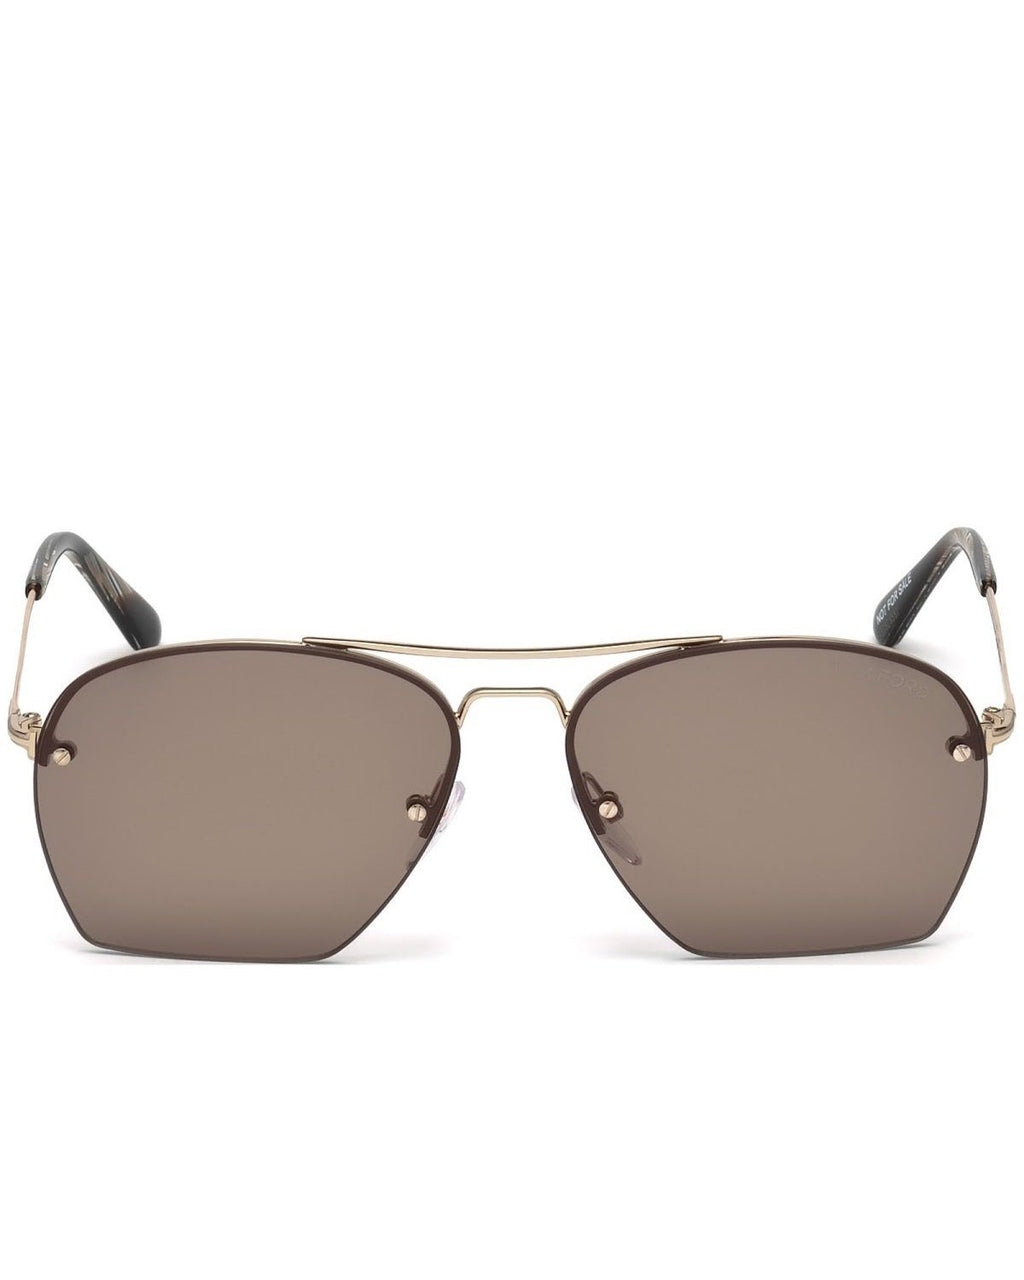 Tom Ford Women's FT0505 28E Whelan Square Gold / Brown Sunglasses